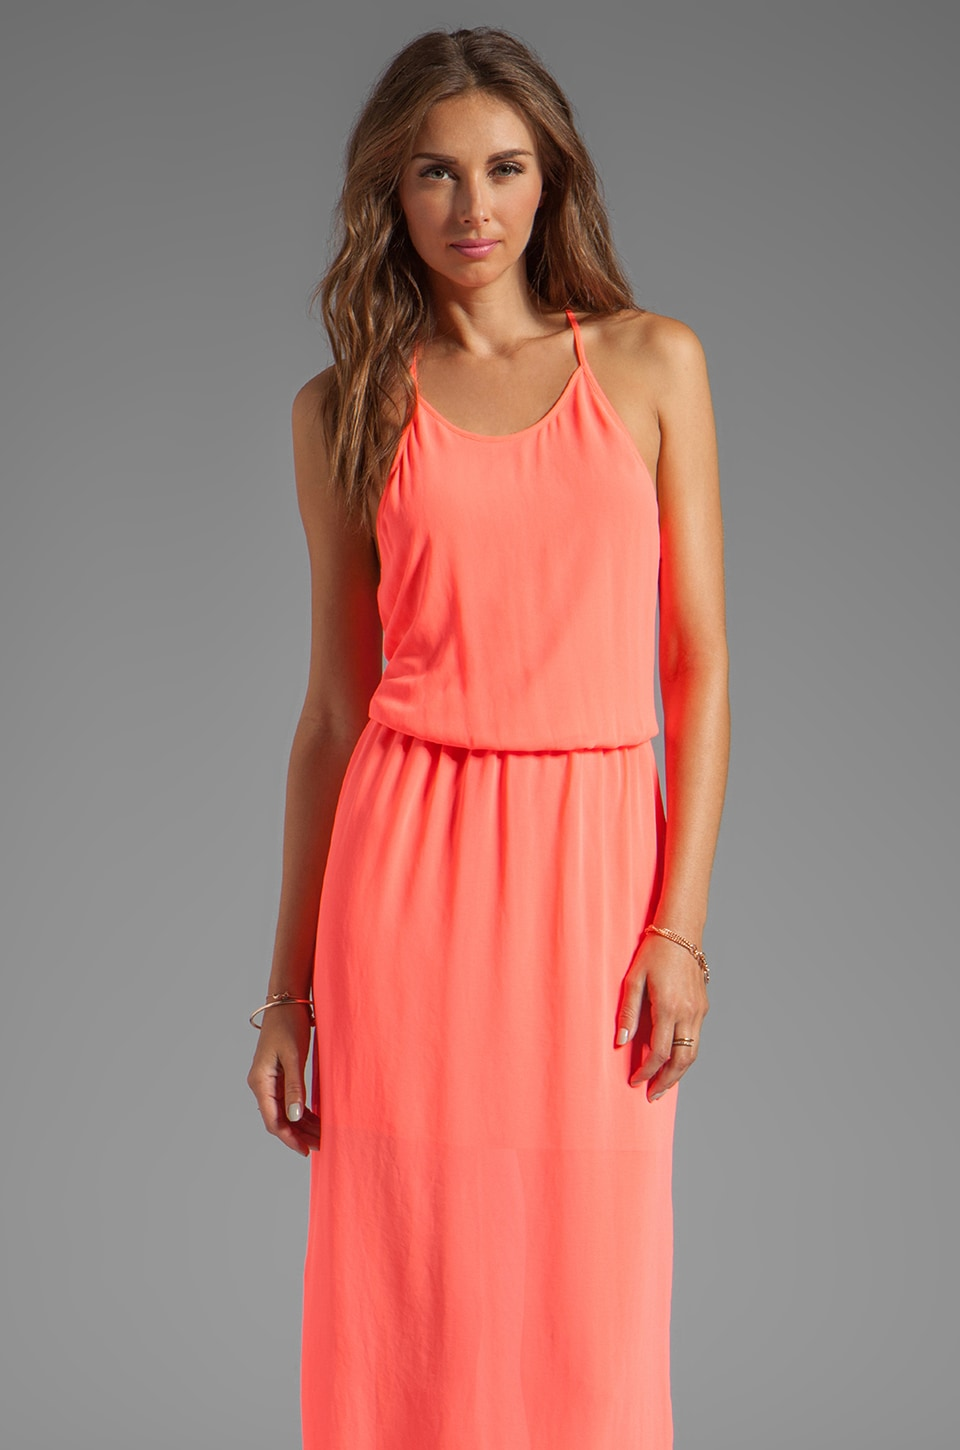 Rory Beca Gemma T Back Gown in Coral